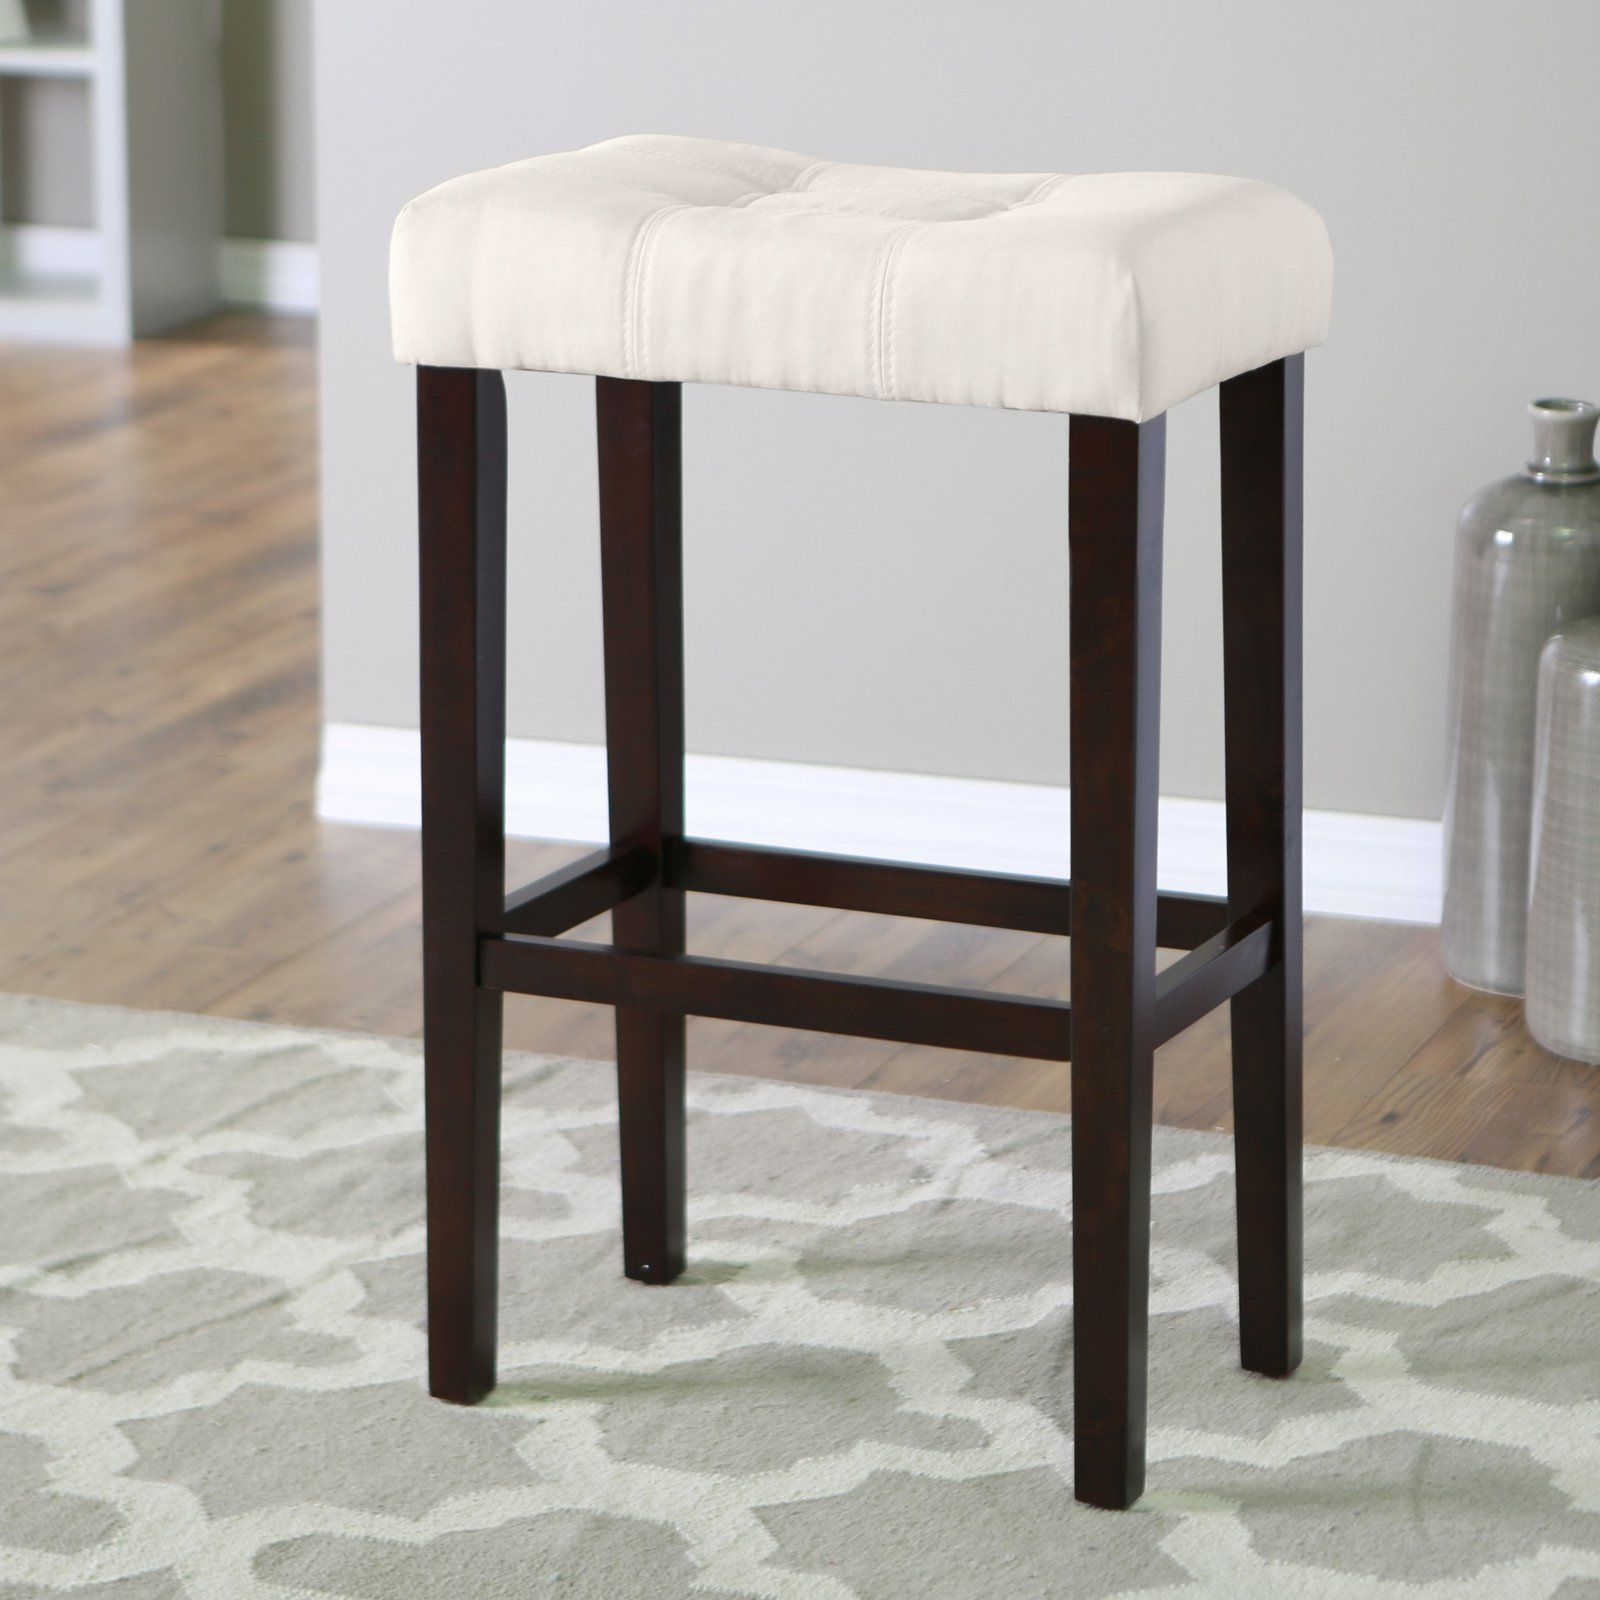 Palazzo 32 Inch Extra Tall Saddle Stool Light Beige From